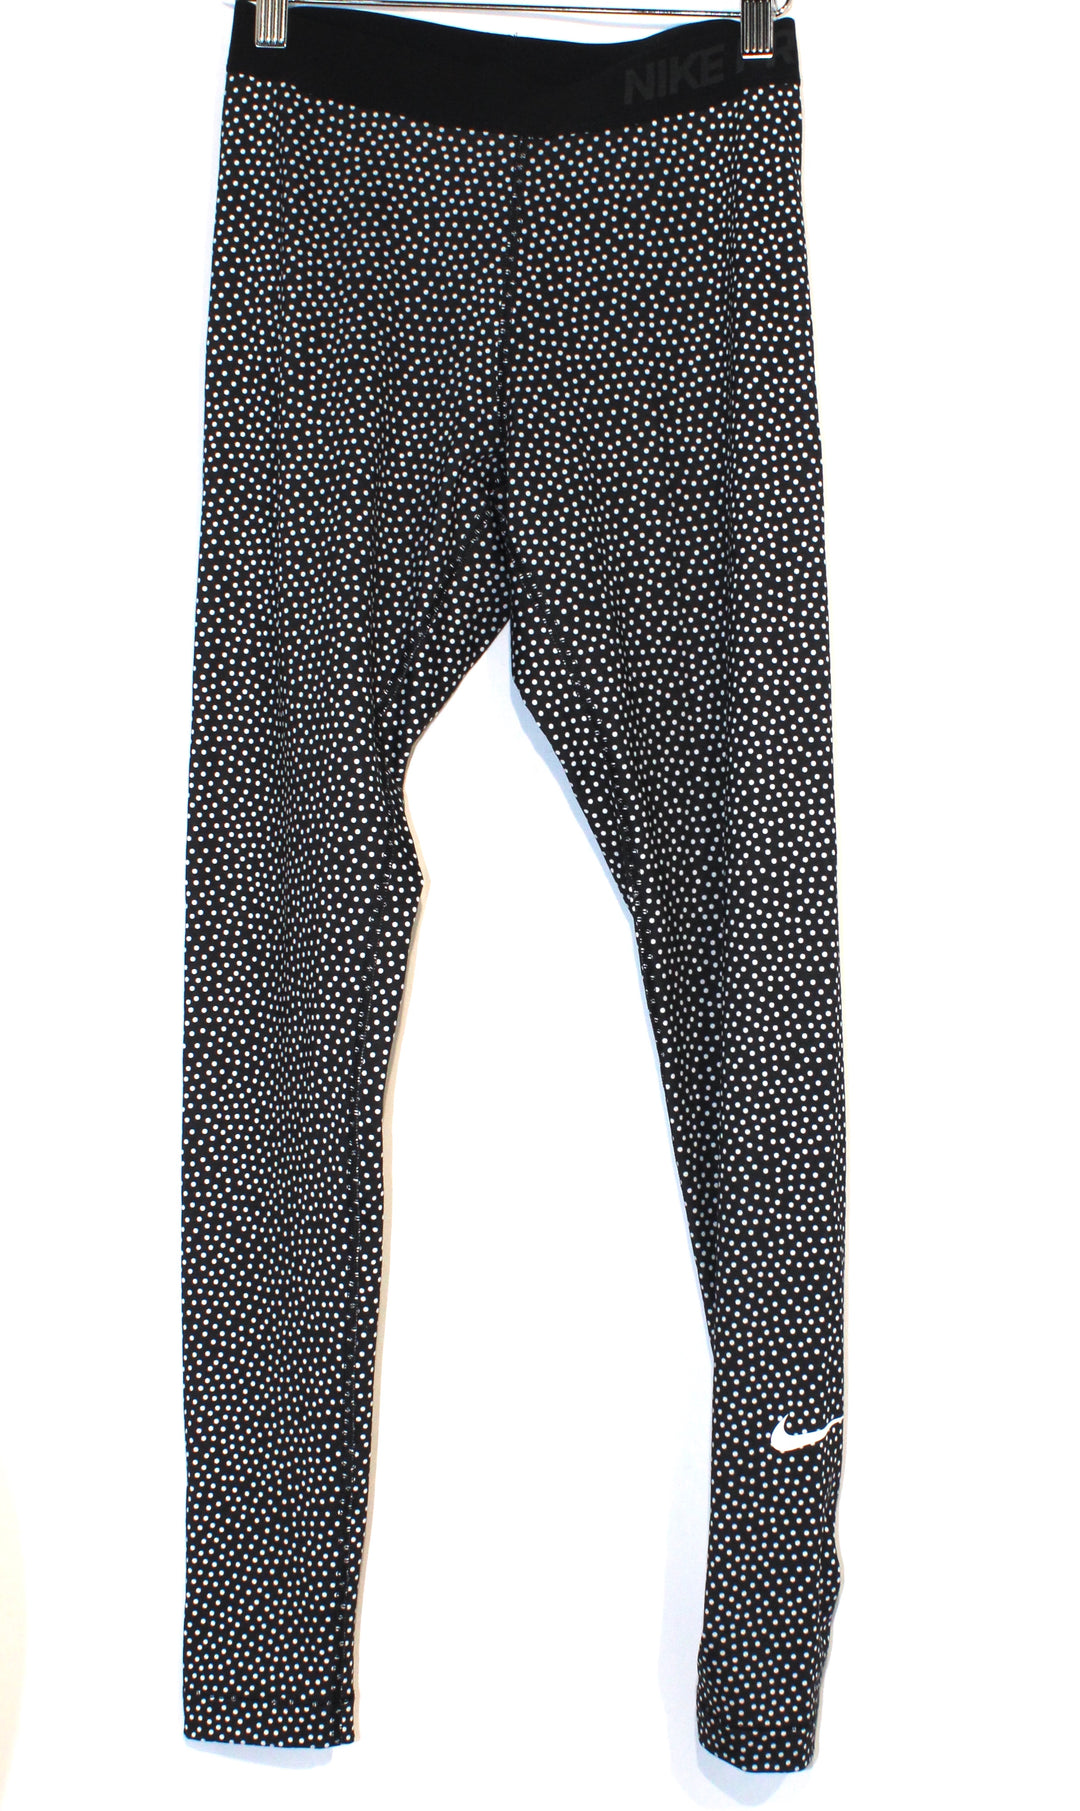 Primary Photo - BRAND: NIKE APPAREL <BR>STYLE: ATHLETIC PANTS<BR>COLOR: DOTS <BR>SIZE: S <BR>SKU: 262-26275-64357